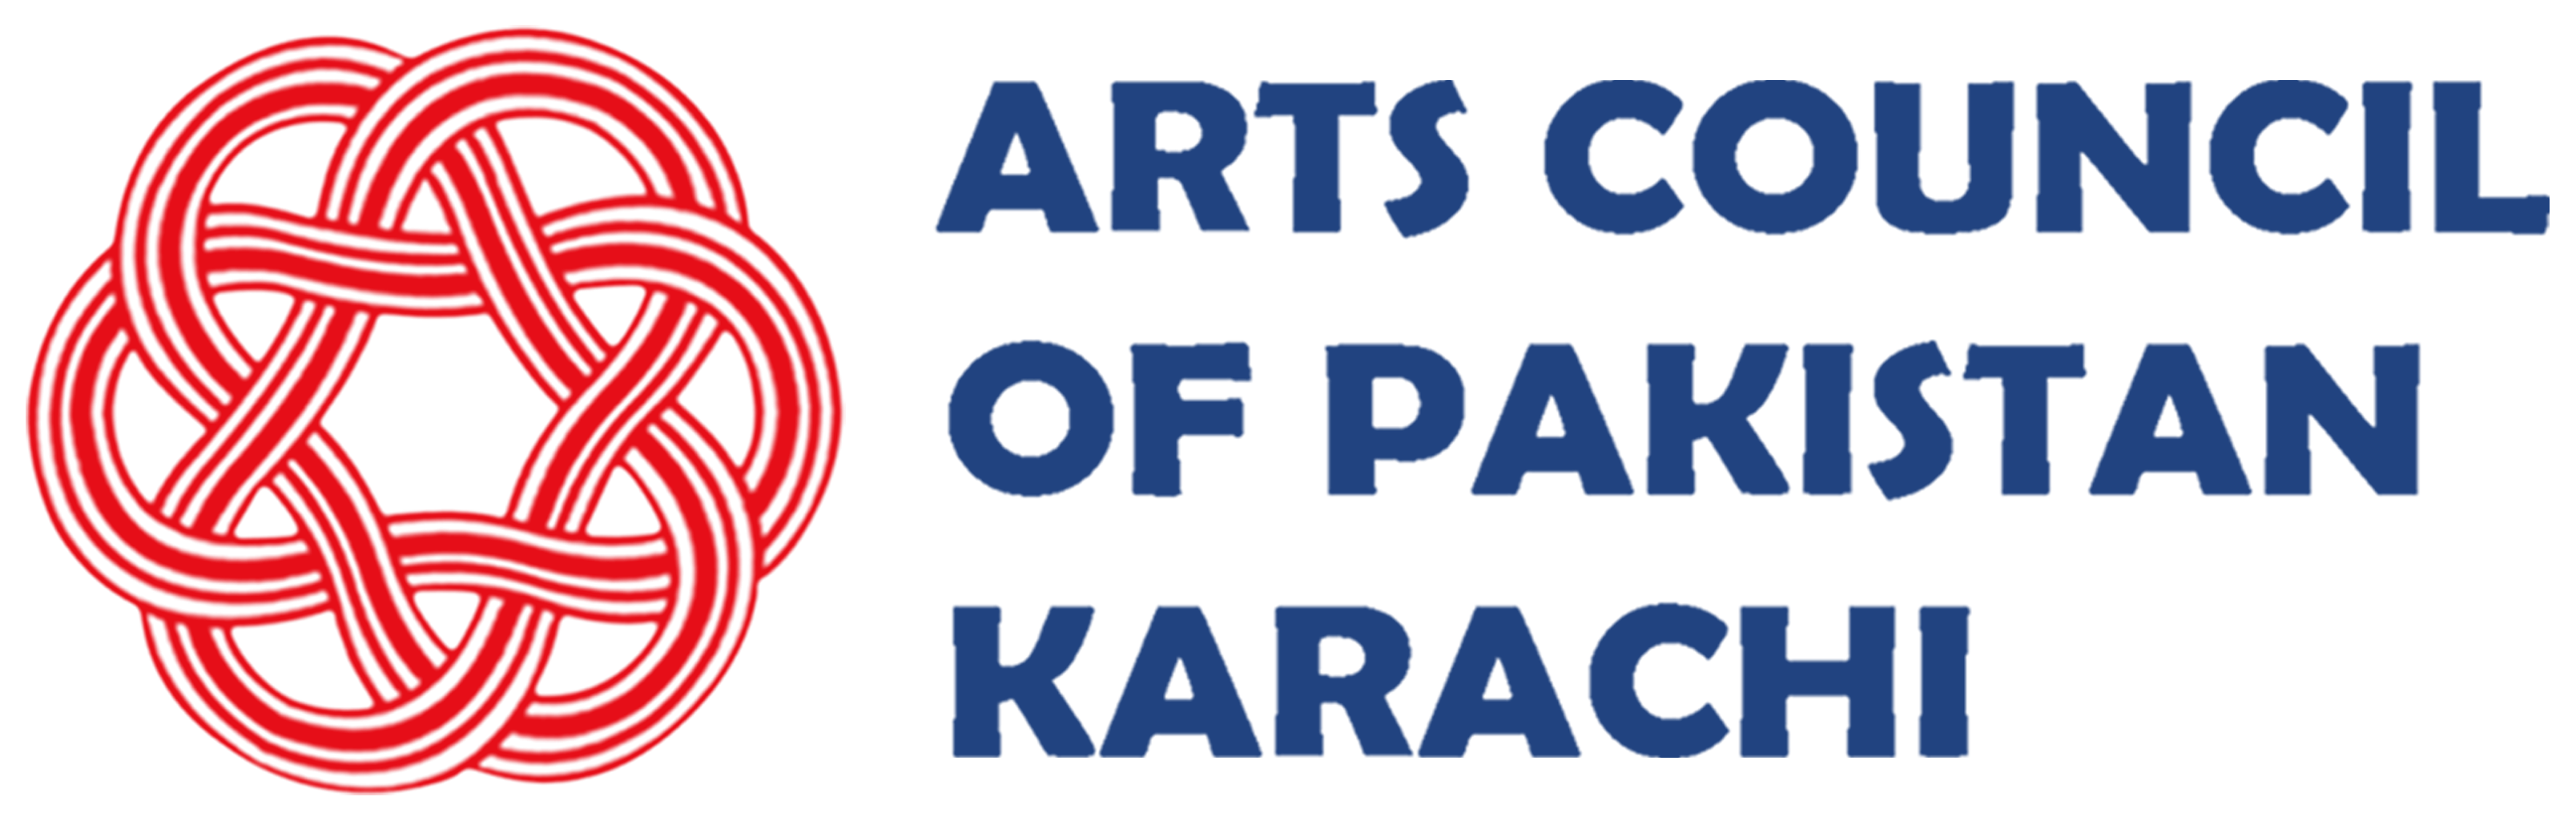 Arts Council of Pakistan Karachi